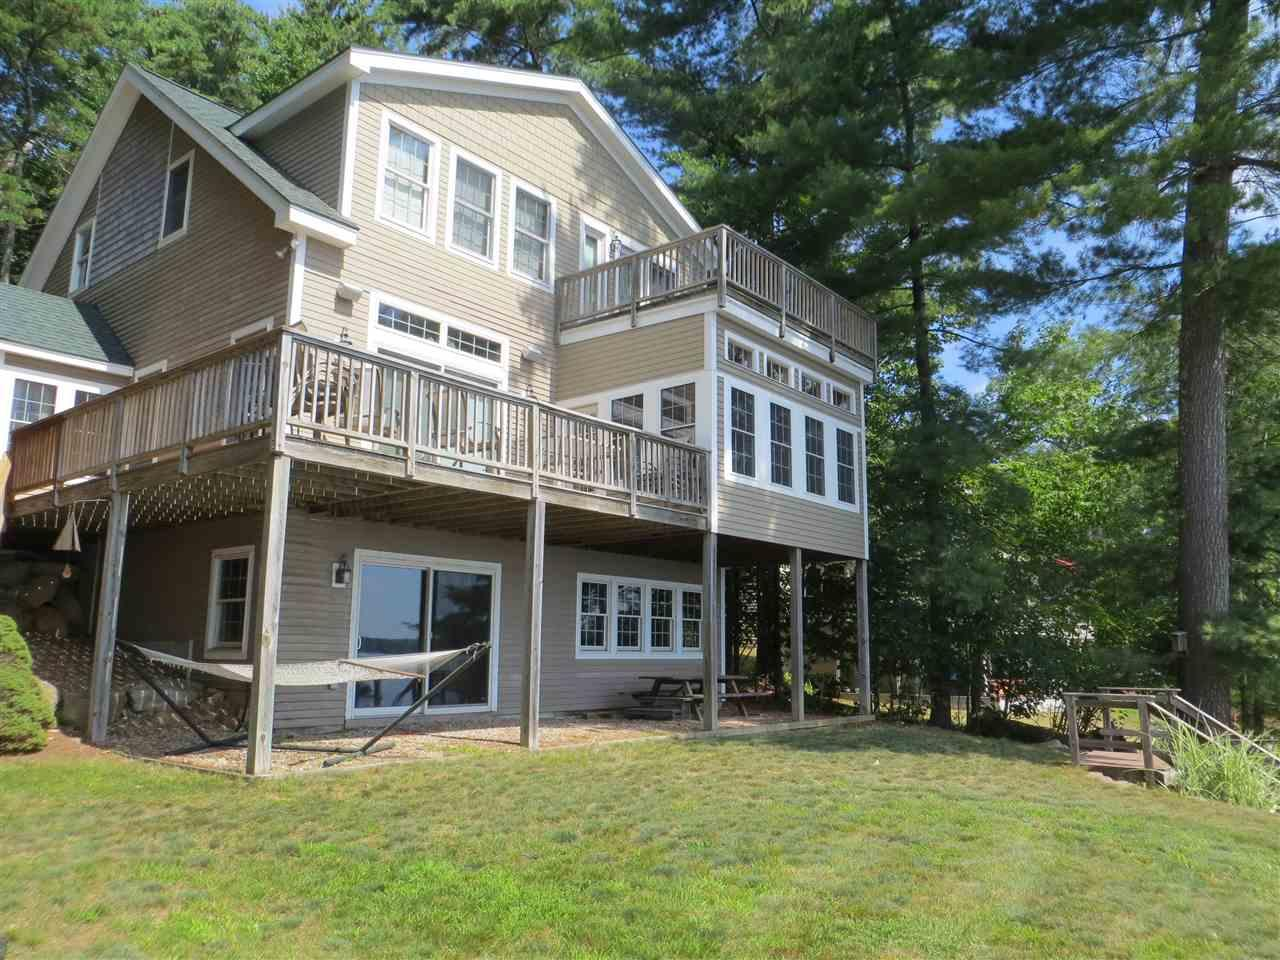 102 Cattle Landing Rd Meredith Nh Mls 4651283 Better Homes And Gardens Real Estate